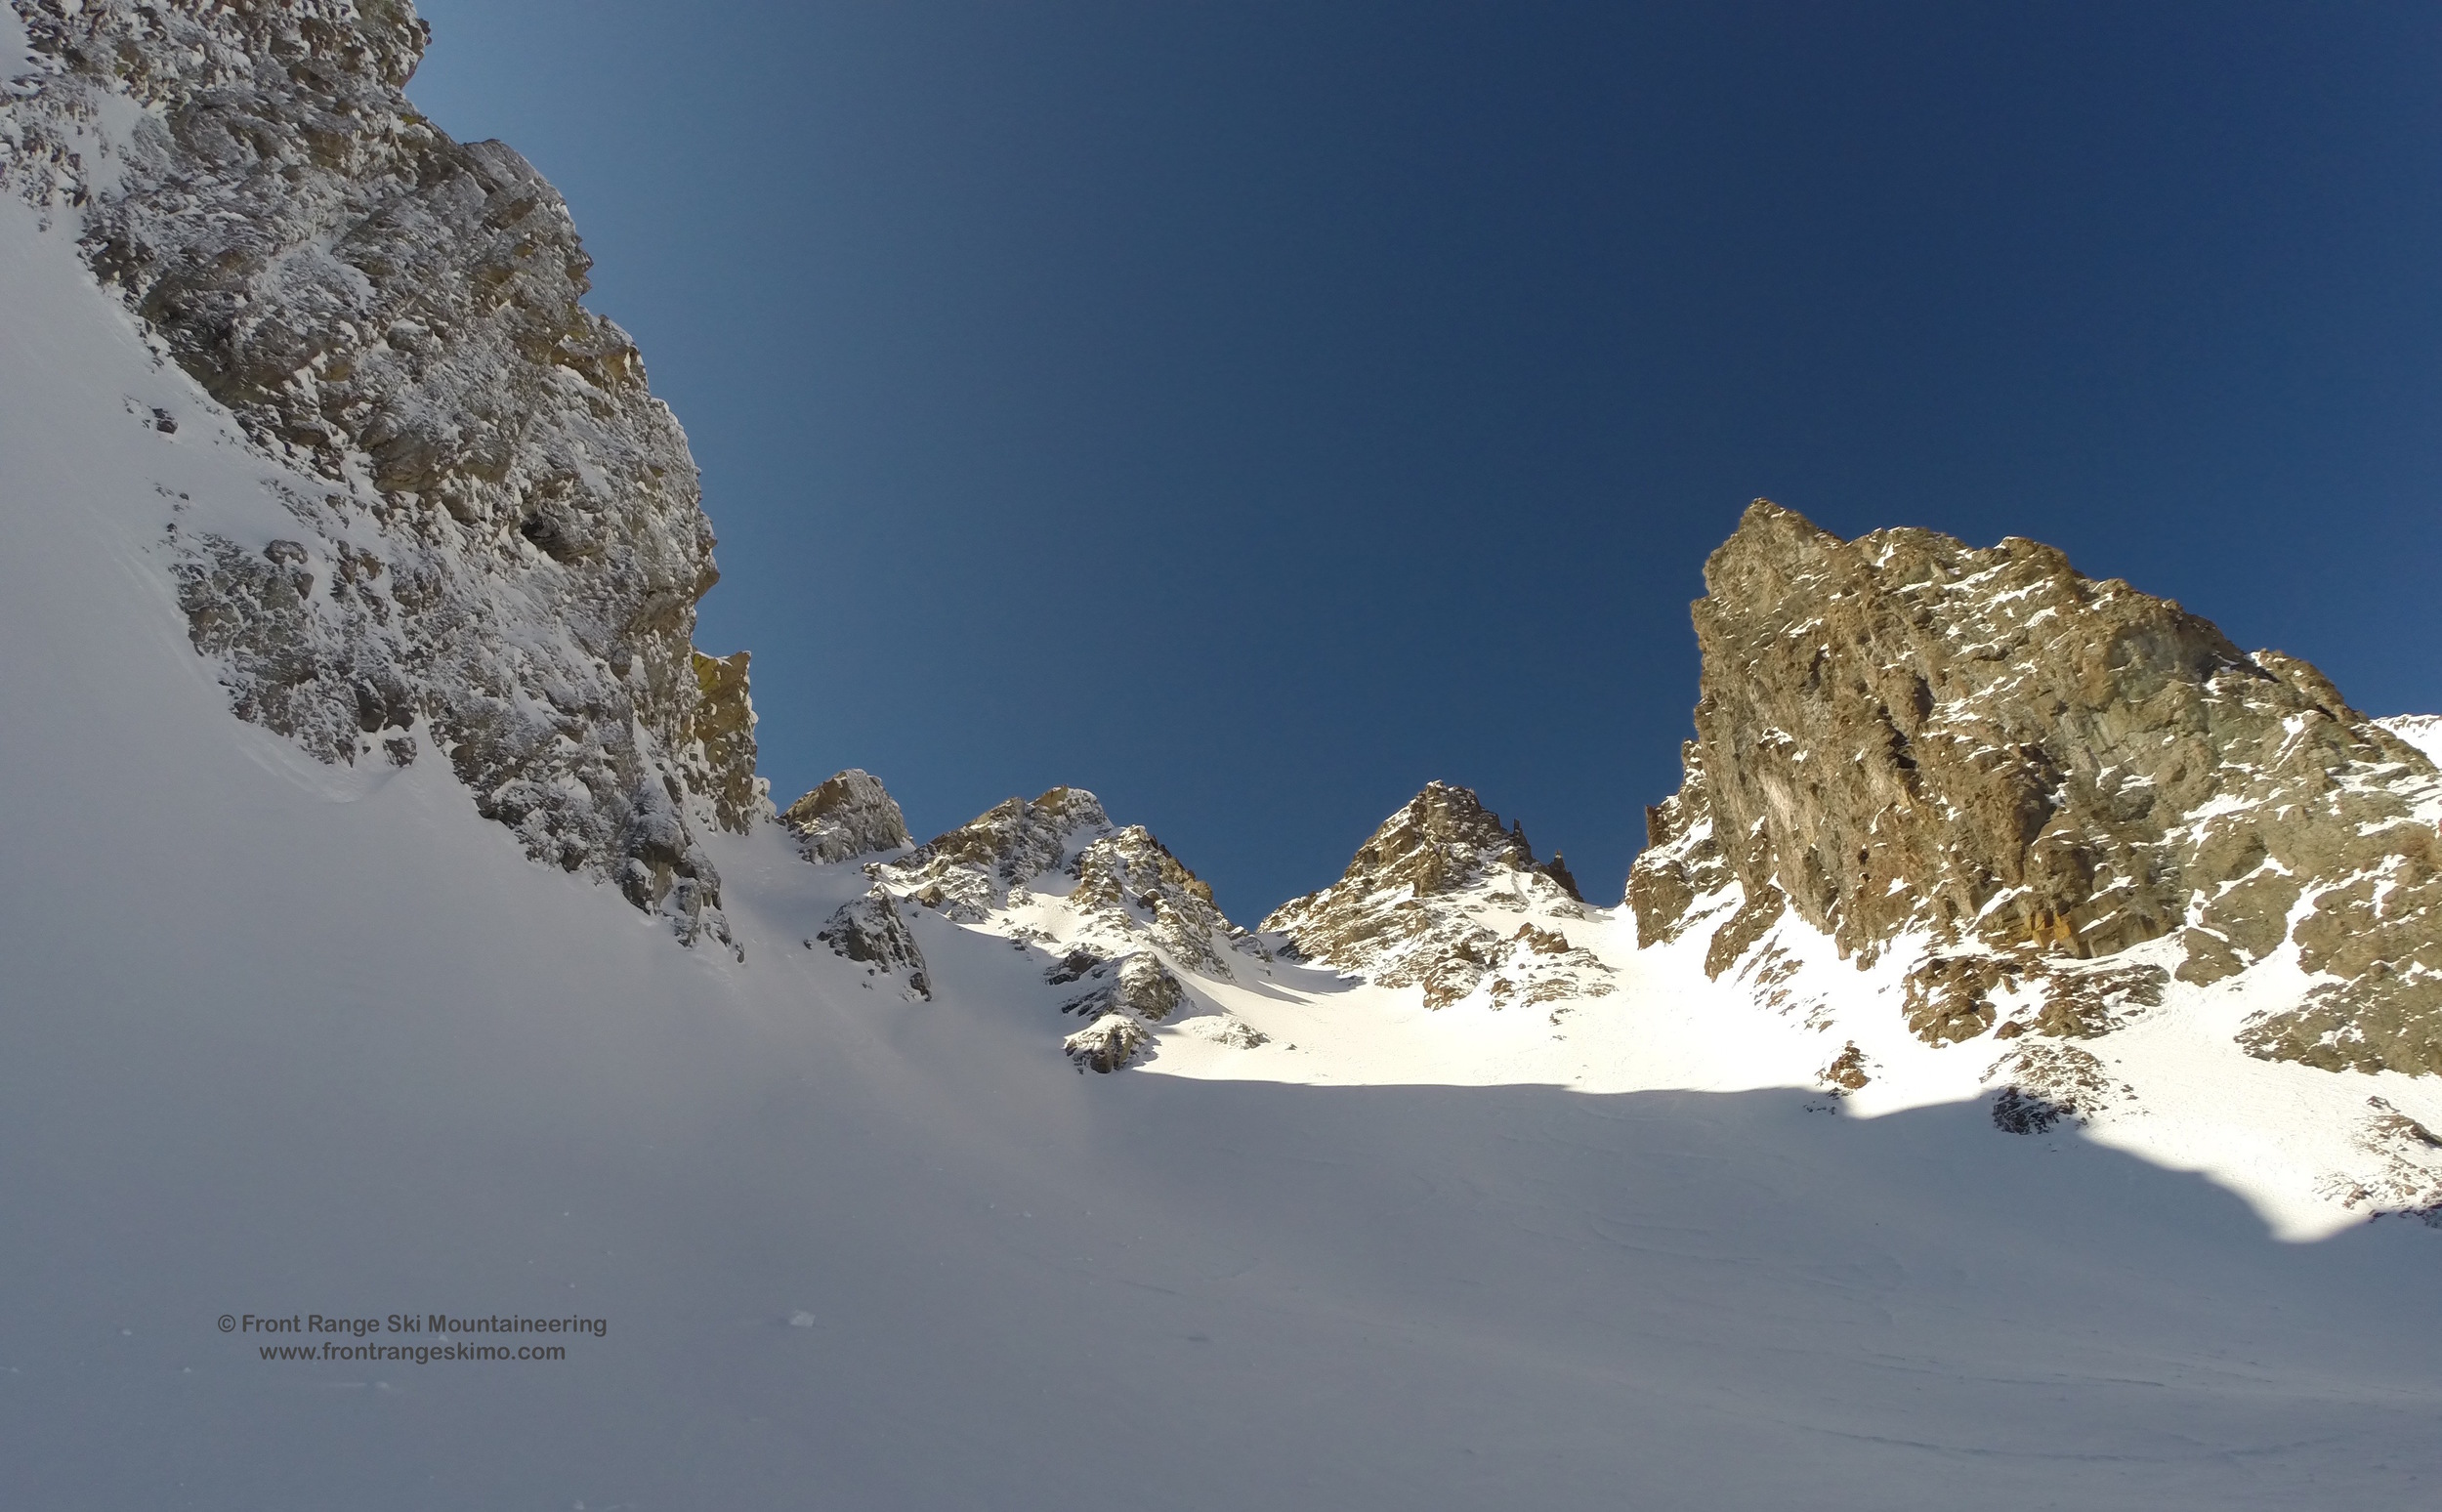 Looking up to Grand Central, Nokhouloir, and Breakfast Couloir.